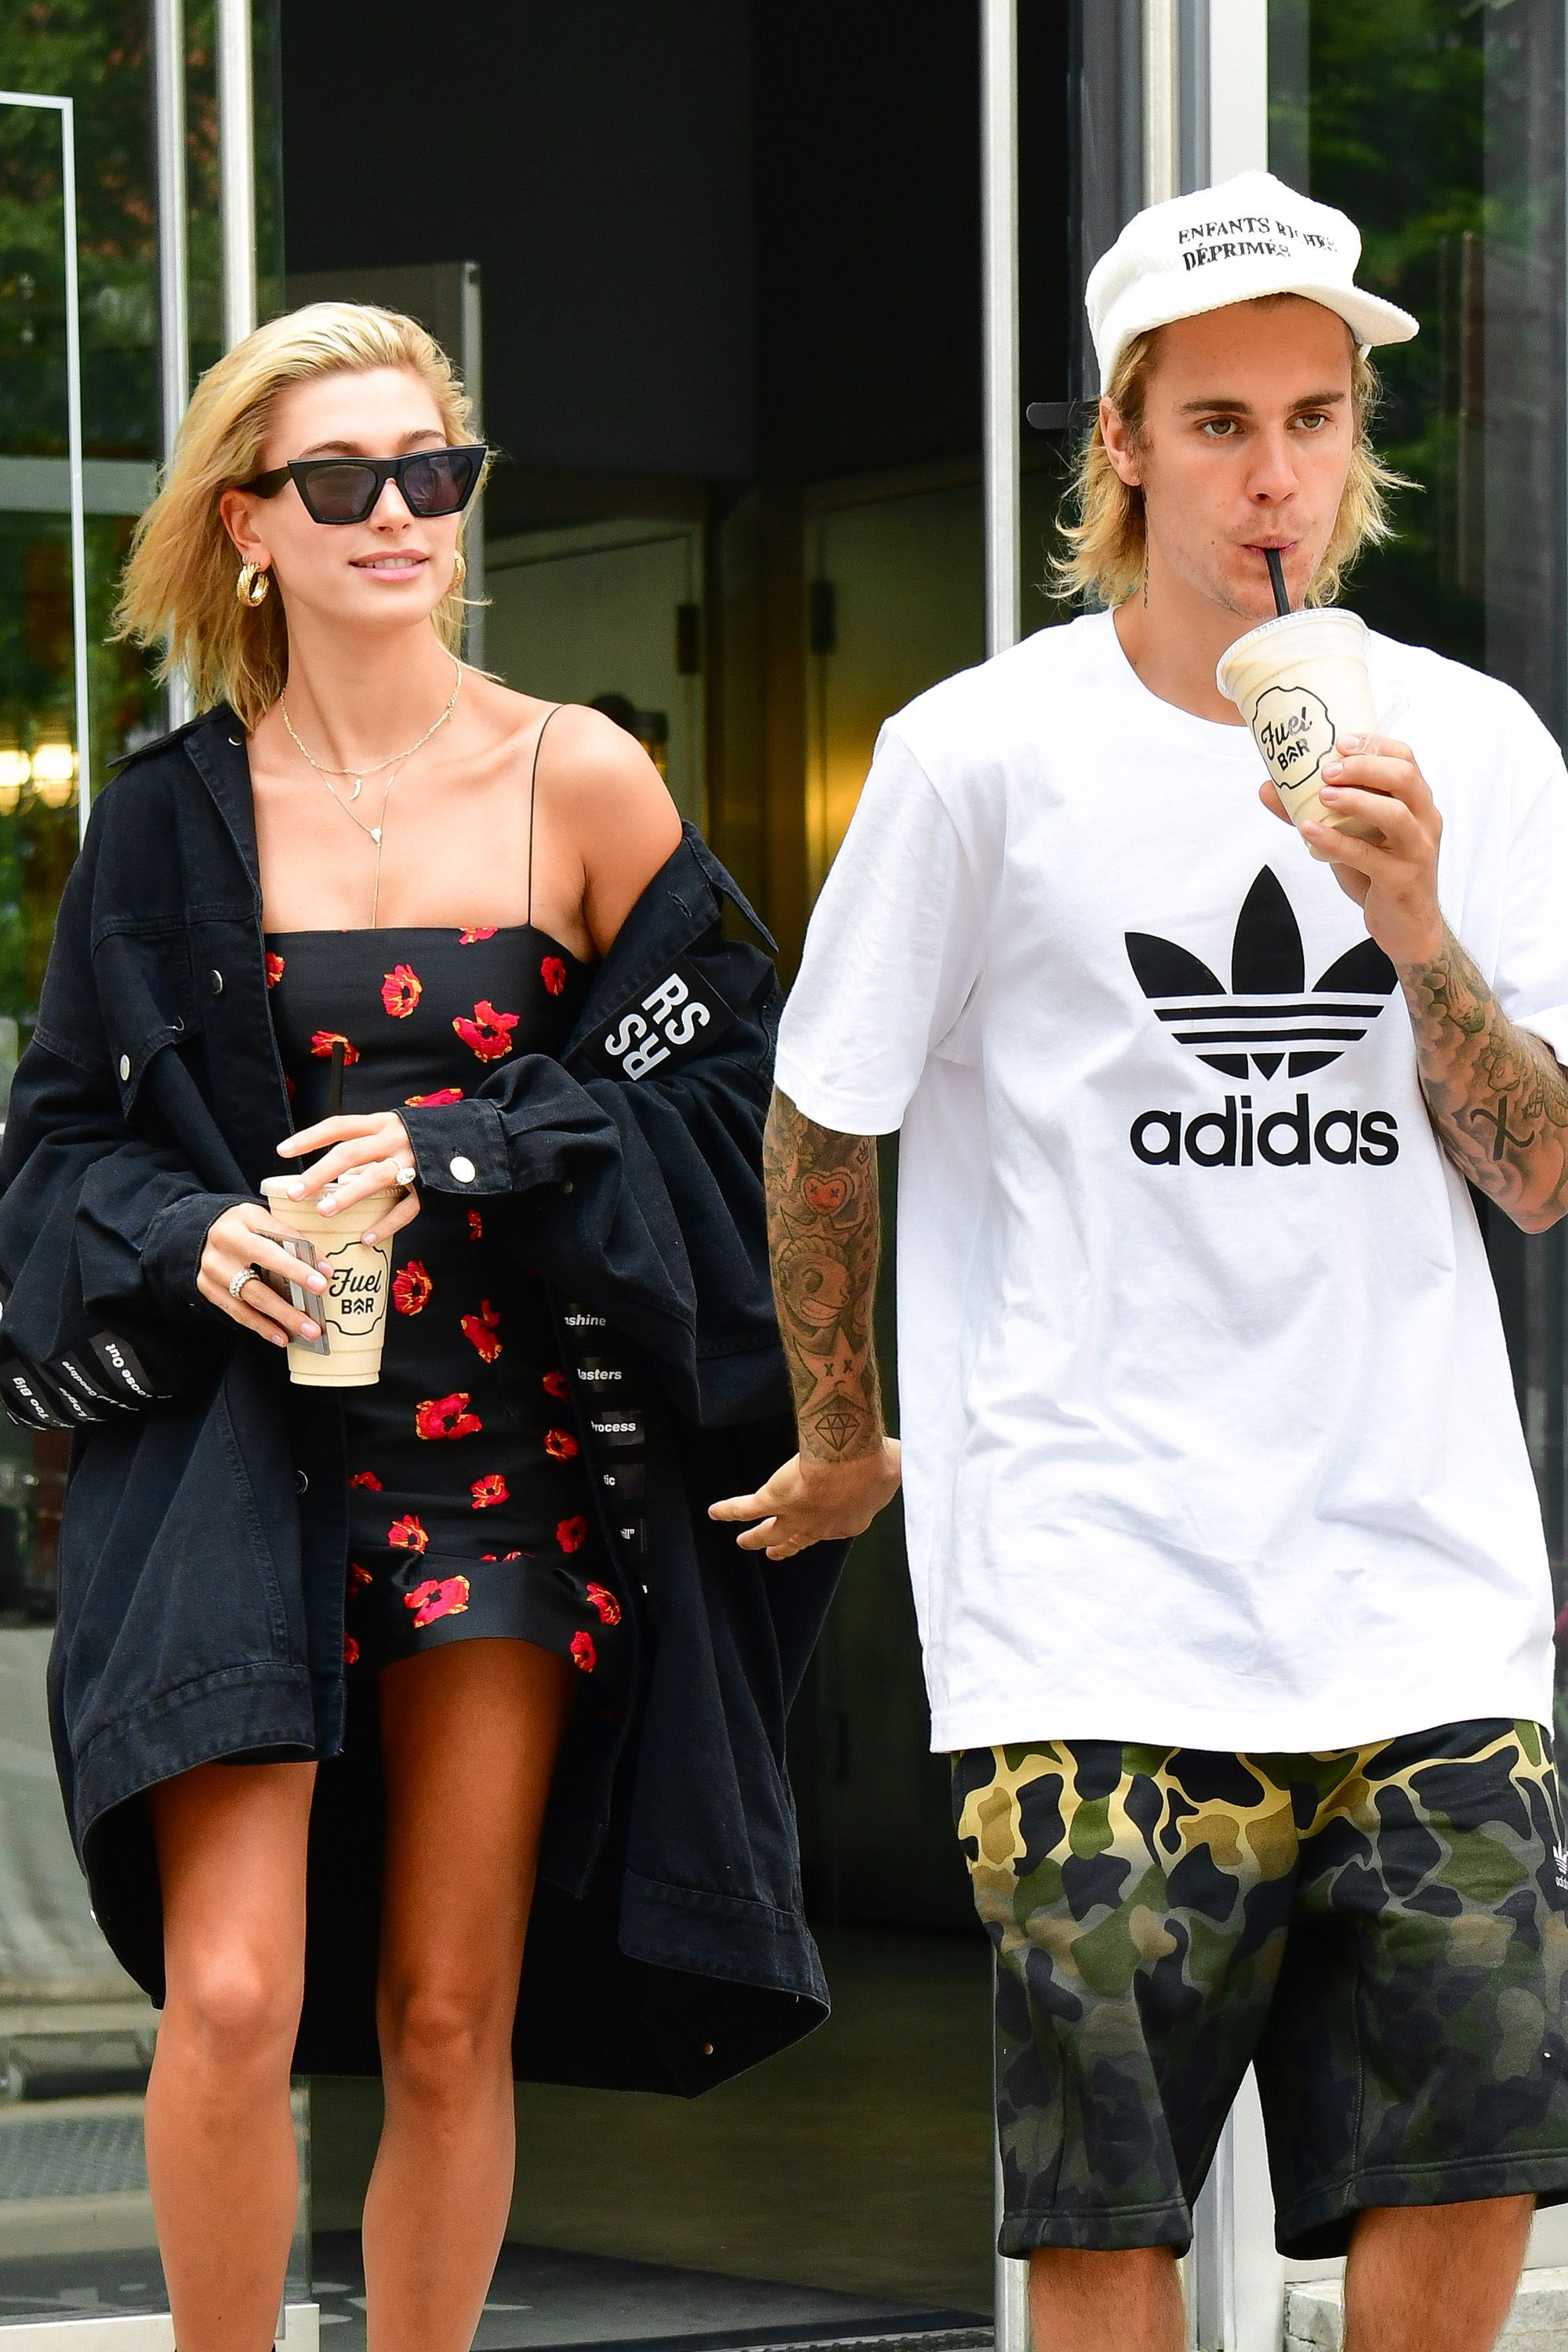 Hailey Baldwin And Justin Biebers Relationship In Photos Every